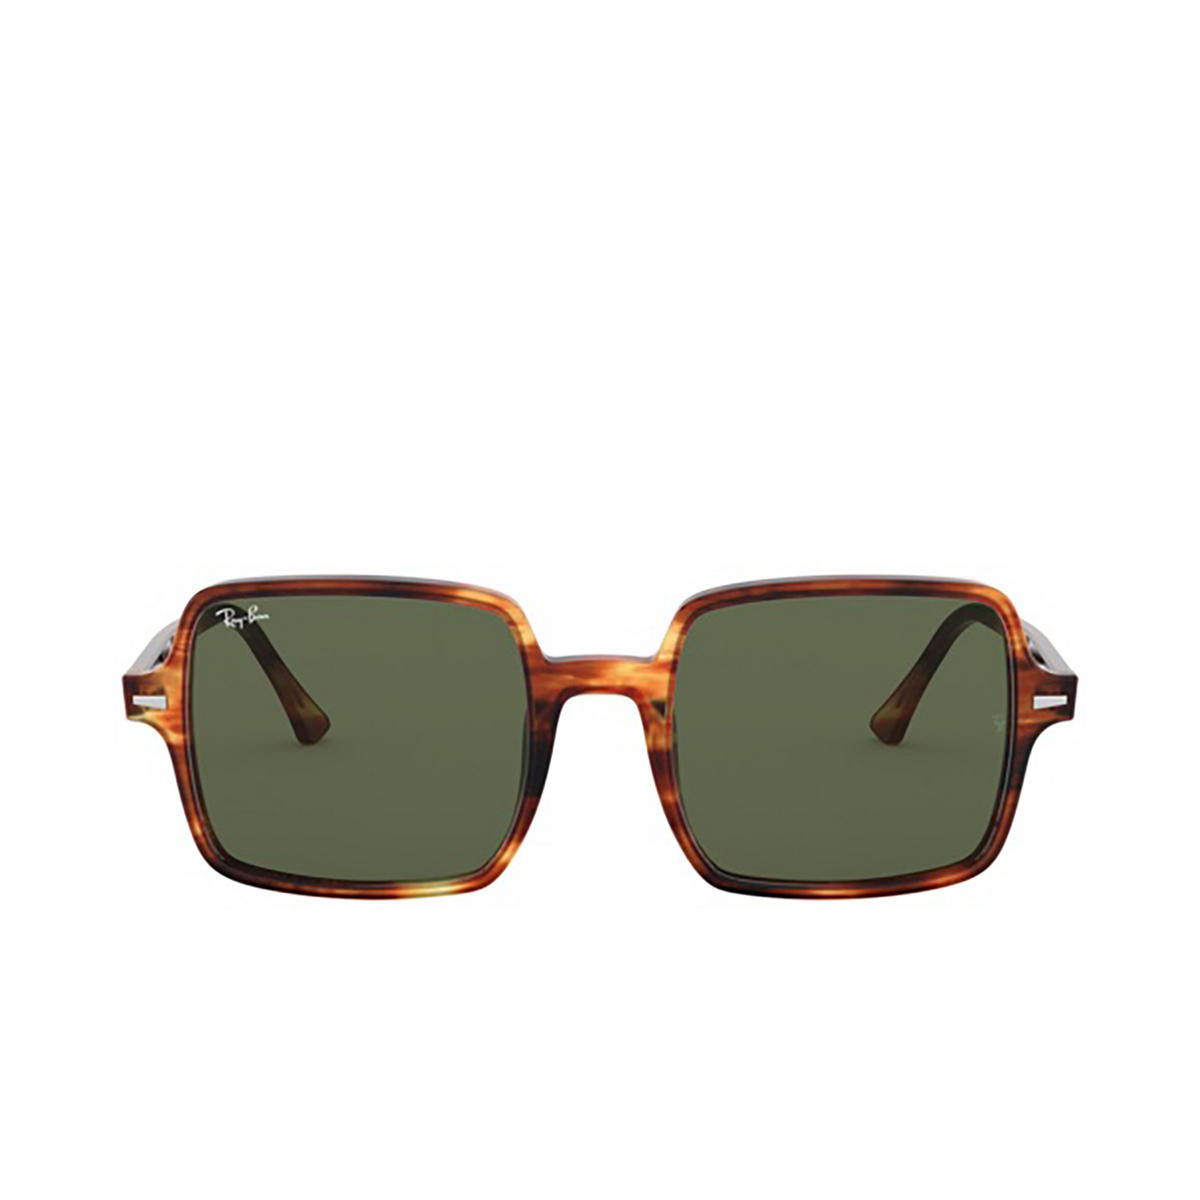 Ray-Ban® Square Sunglasses: Square Ii RB1973 color Striped Havana 954/31 - front view.